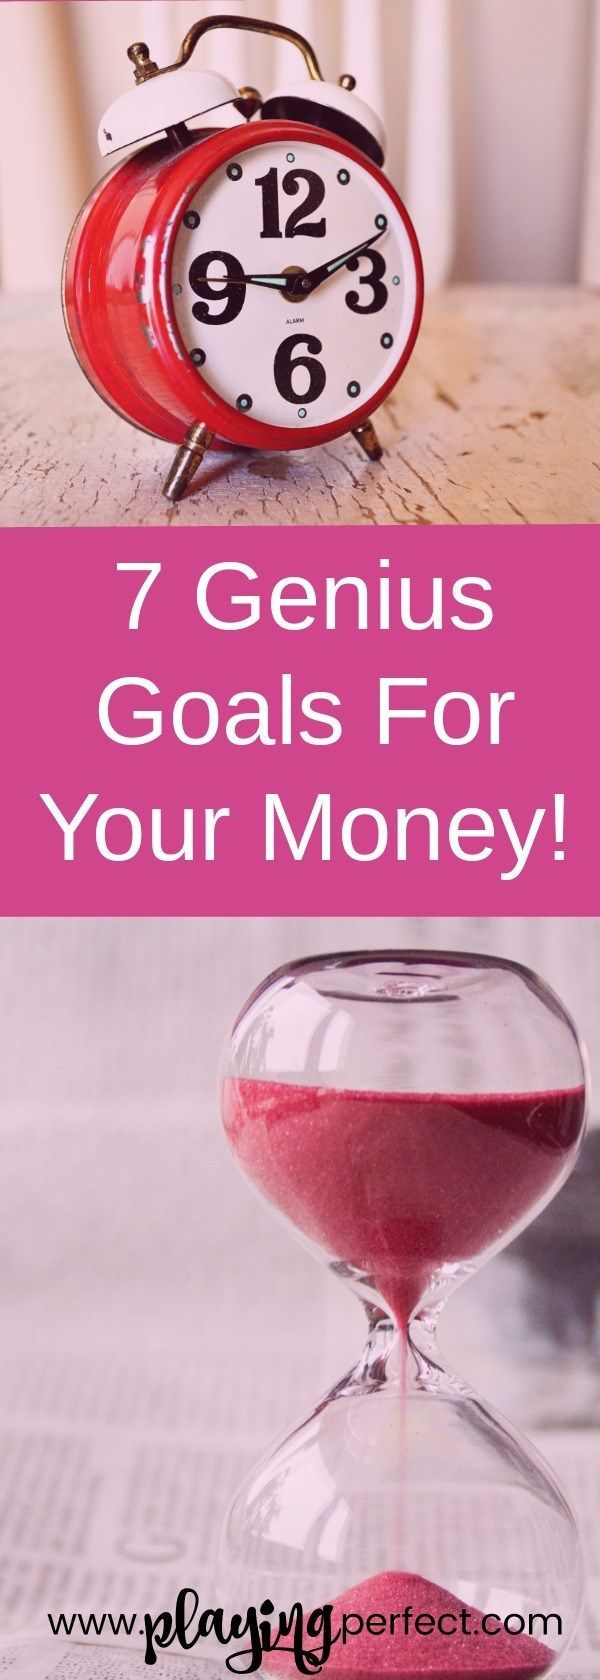 Just like most things in life, to get to where you want to go you need some goals to get you on your journey! Here are seven genius savings goals that will get you to your dreams! Spend your time and your money wisely with making the best savings goals ever! FREE printable!   playingperfect.com